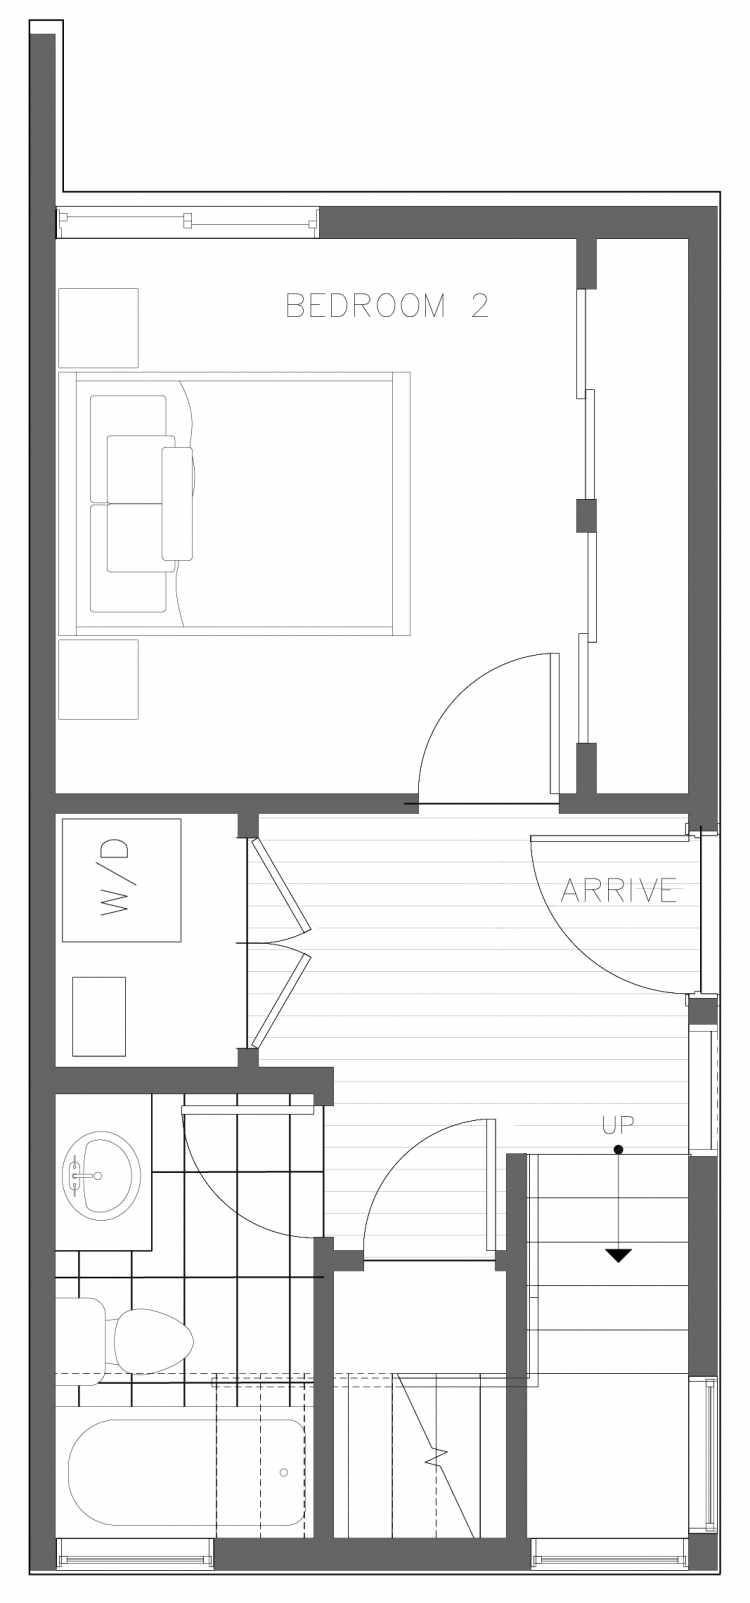 First Floor Plan of 1728A 11th Ave, One of the Altair Townhomes in Capitol Hill by Isola Homes